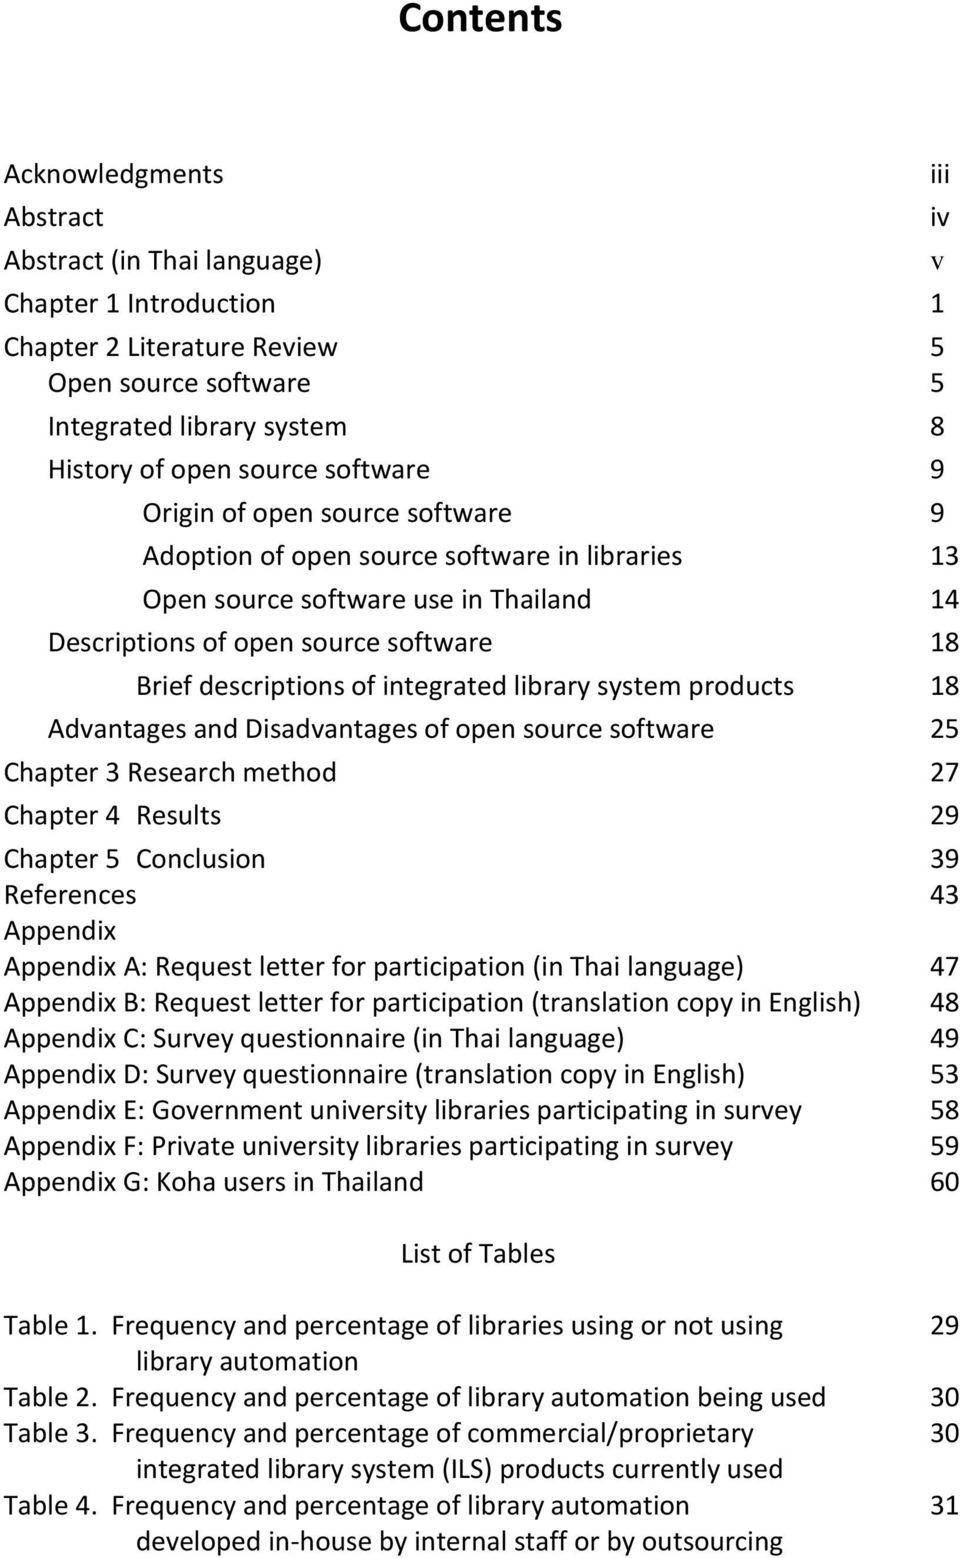 library system products 18 Advantages and Disadvantages of open source software 25 Chapter 3 Research method 27 Chapter 4 Results 29 Chapter 5 Conclusion 39 References 43 Appendix Appendix A: Request